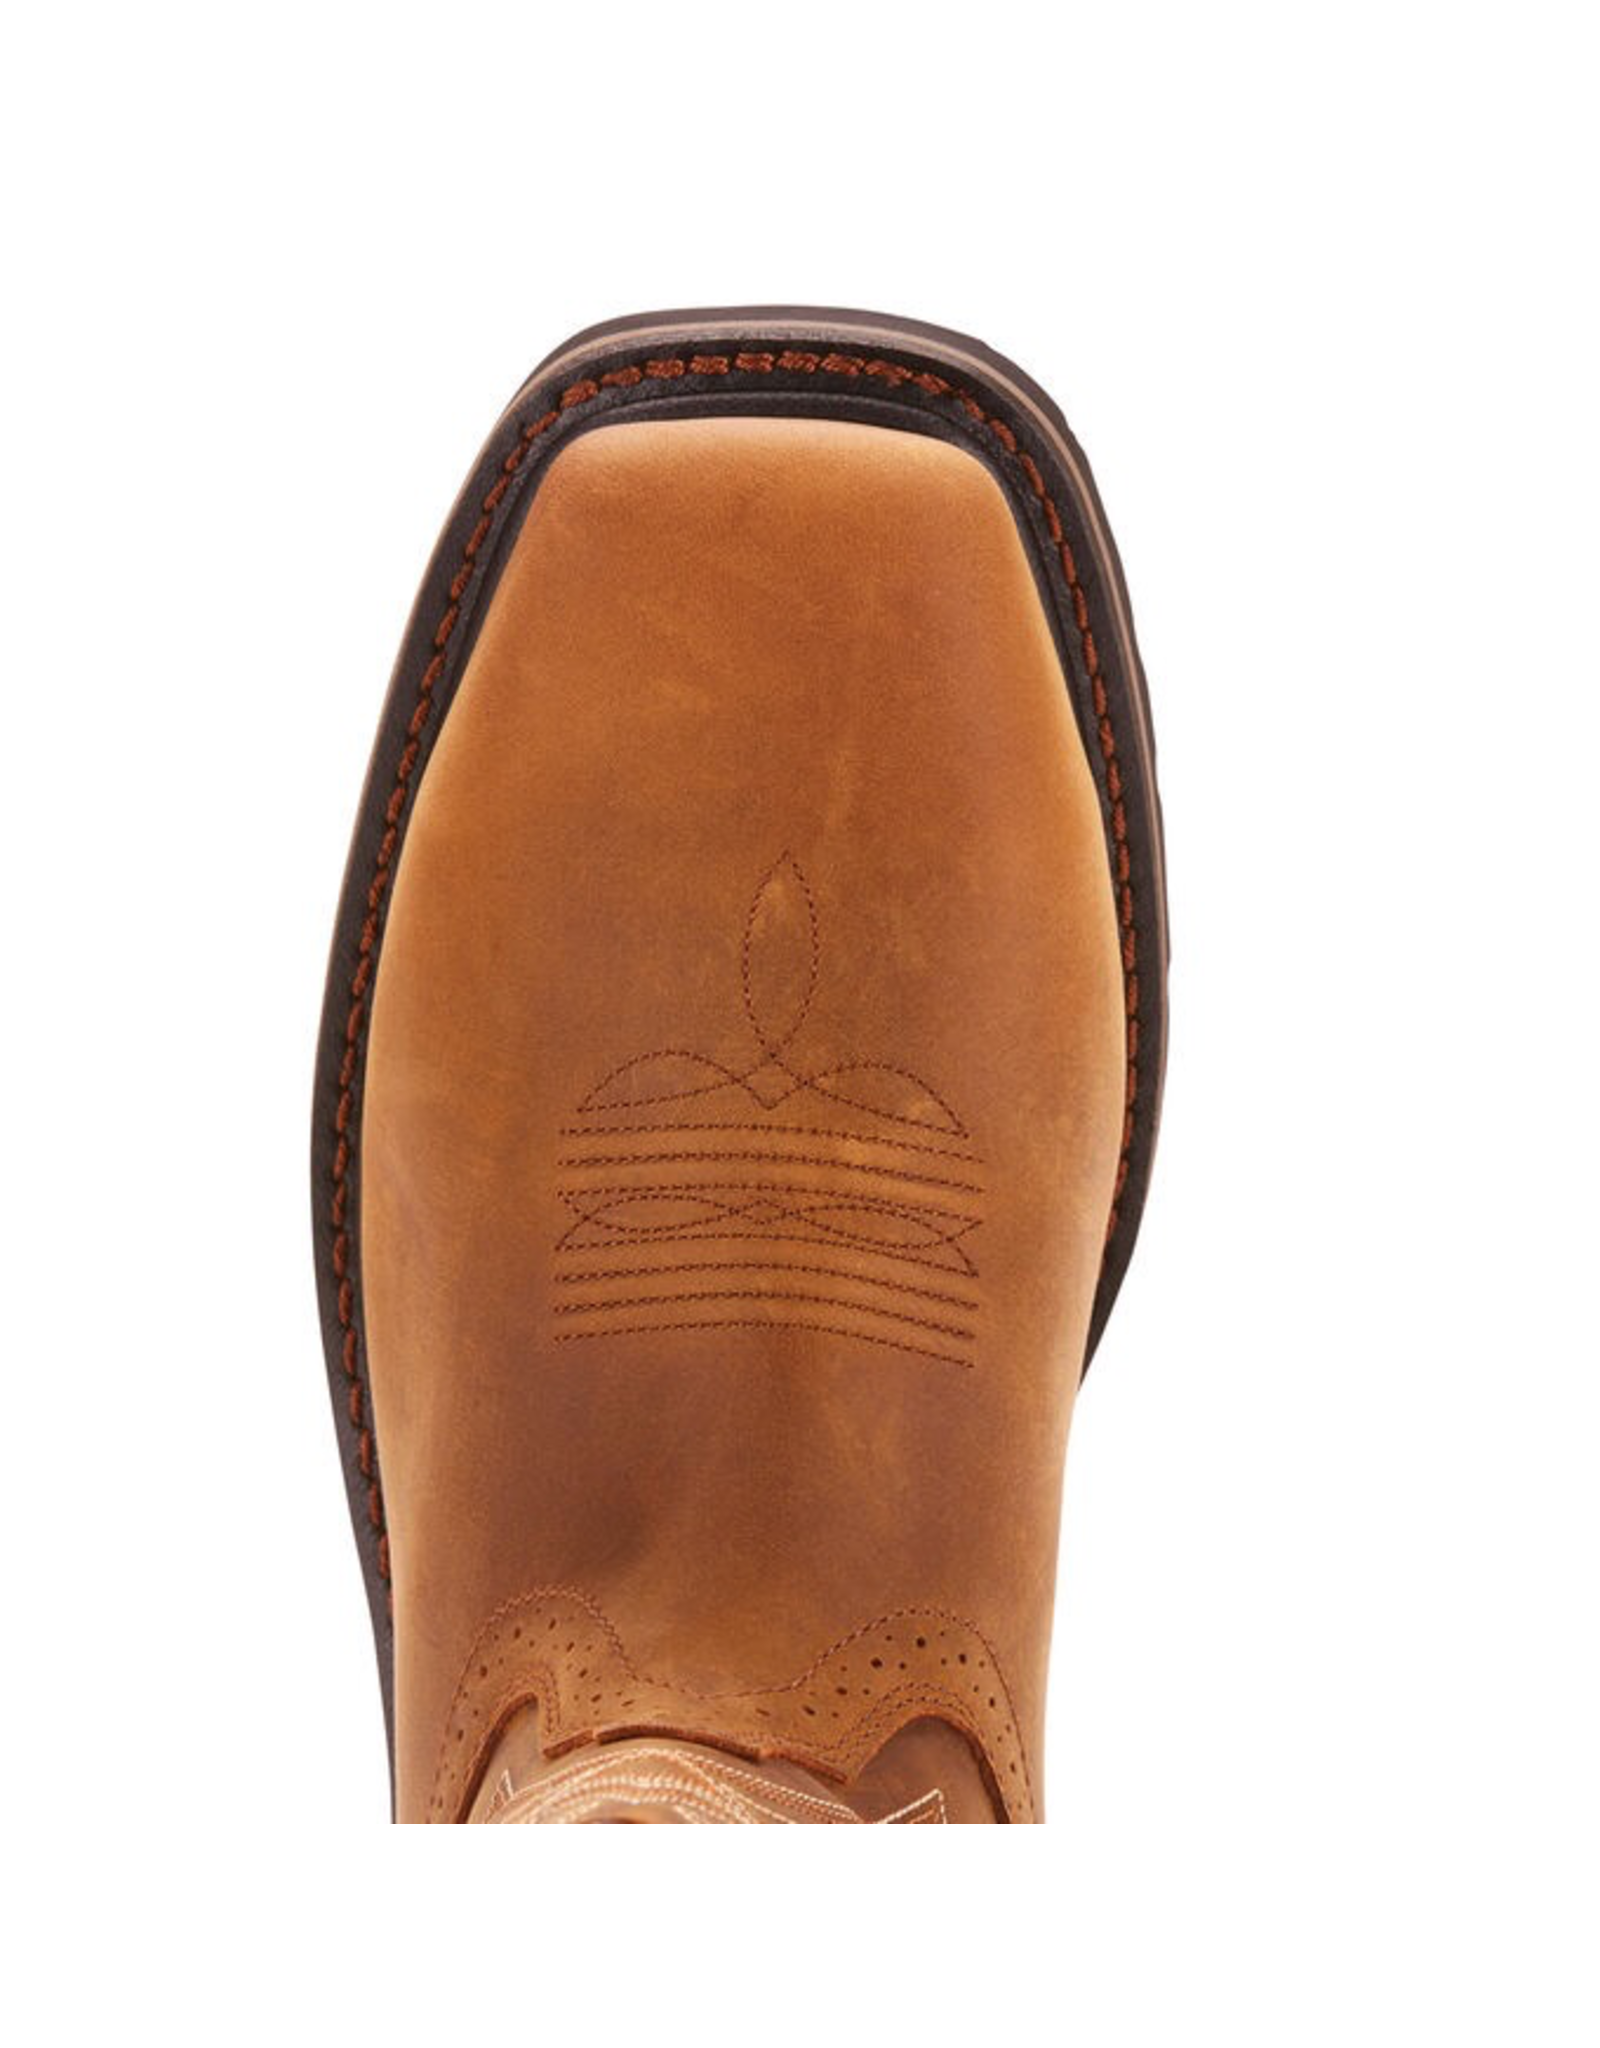 Boots-Men ARIAT 10024957 Everett